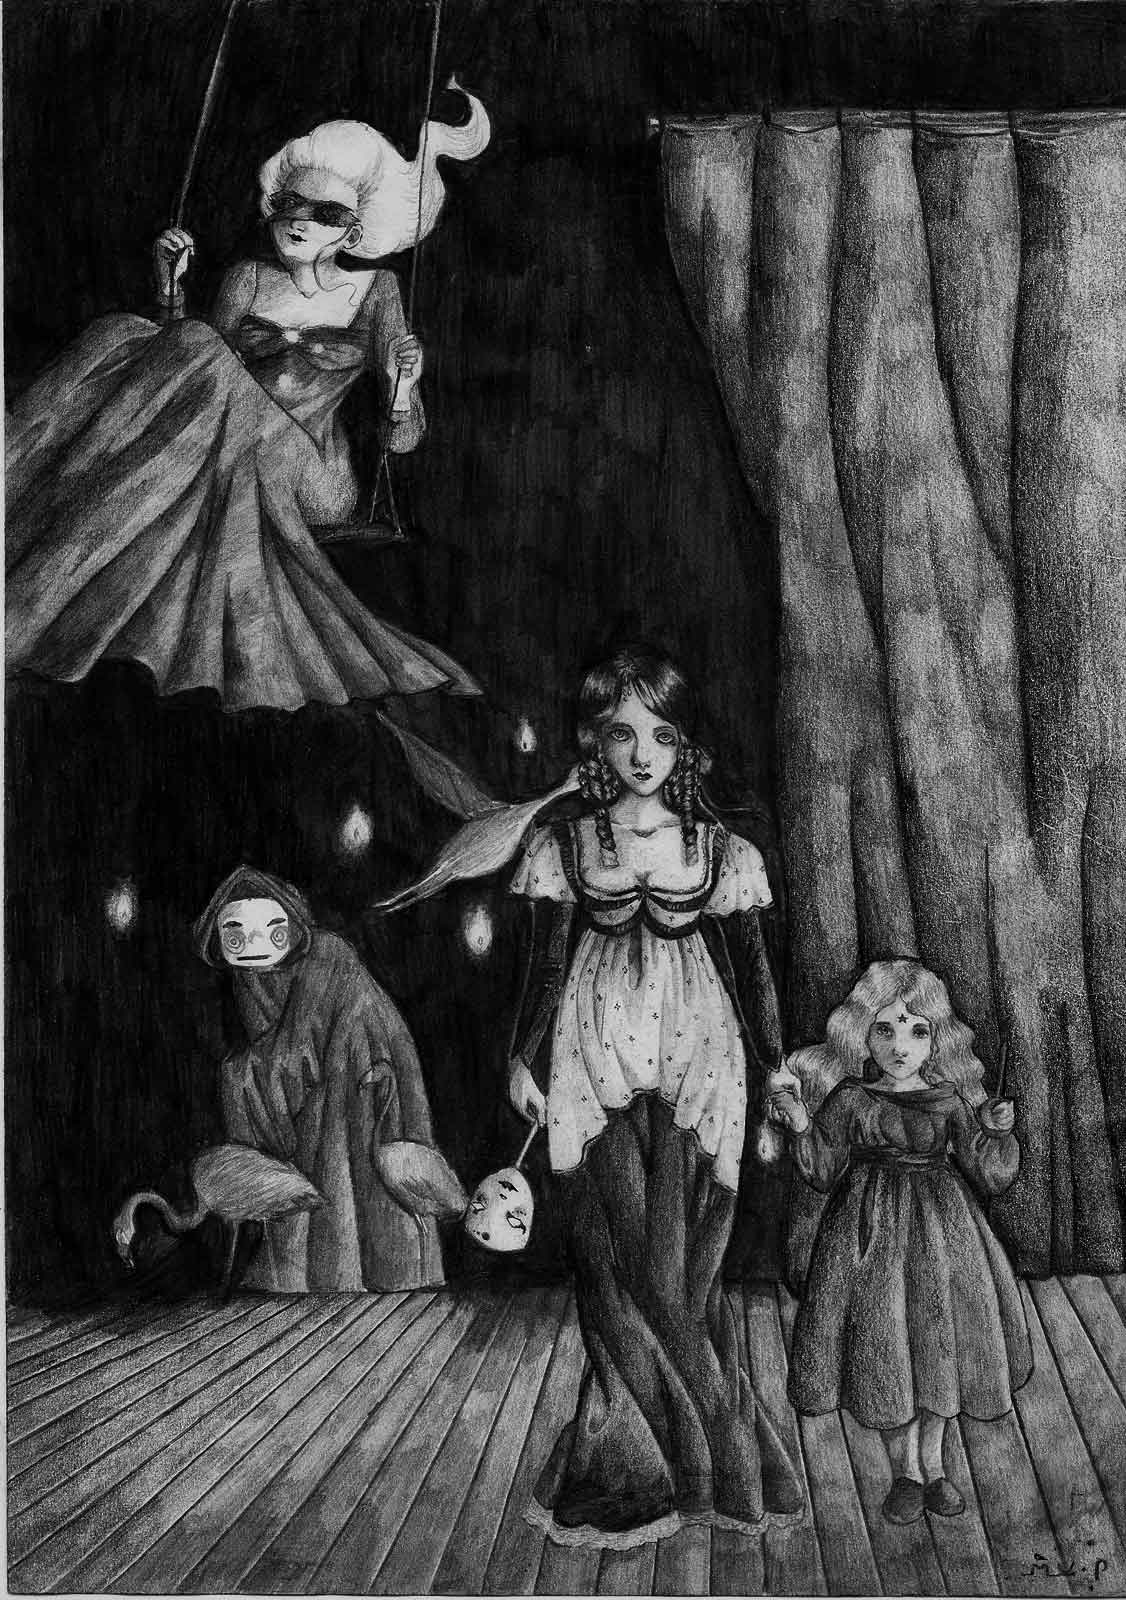 Surreal drawing of a theatre stage with miscellanous odd characters.